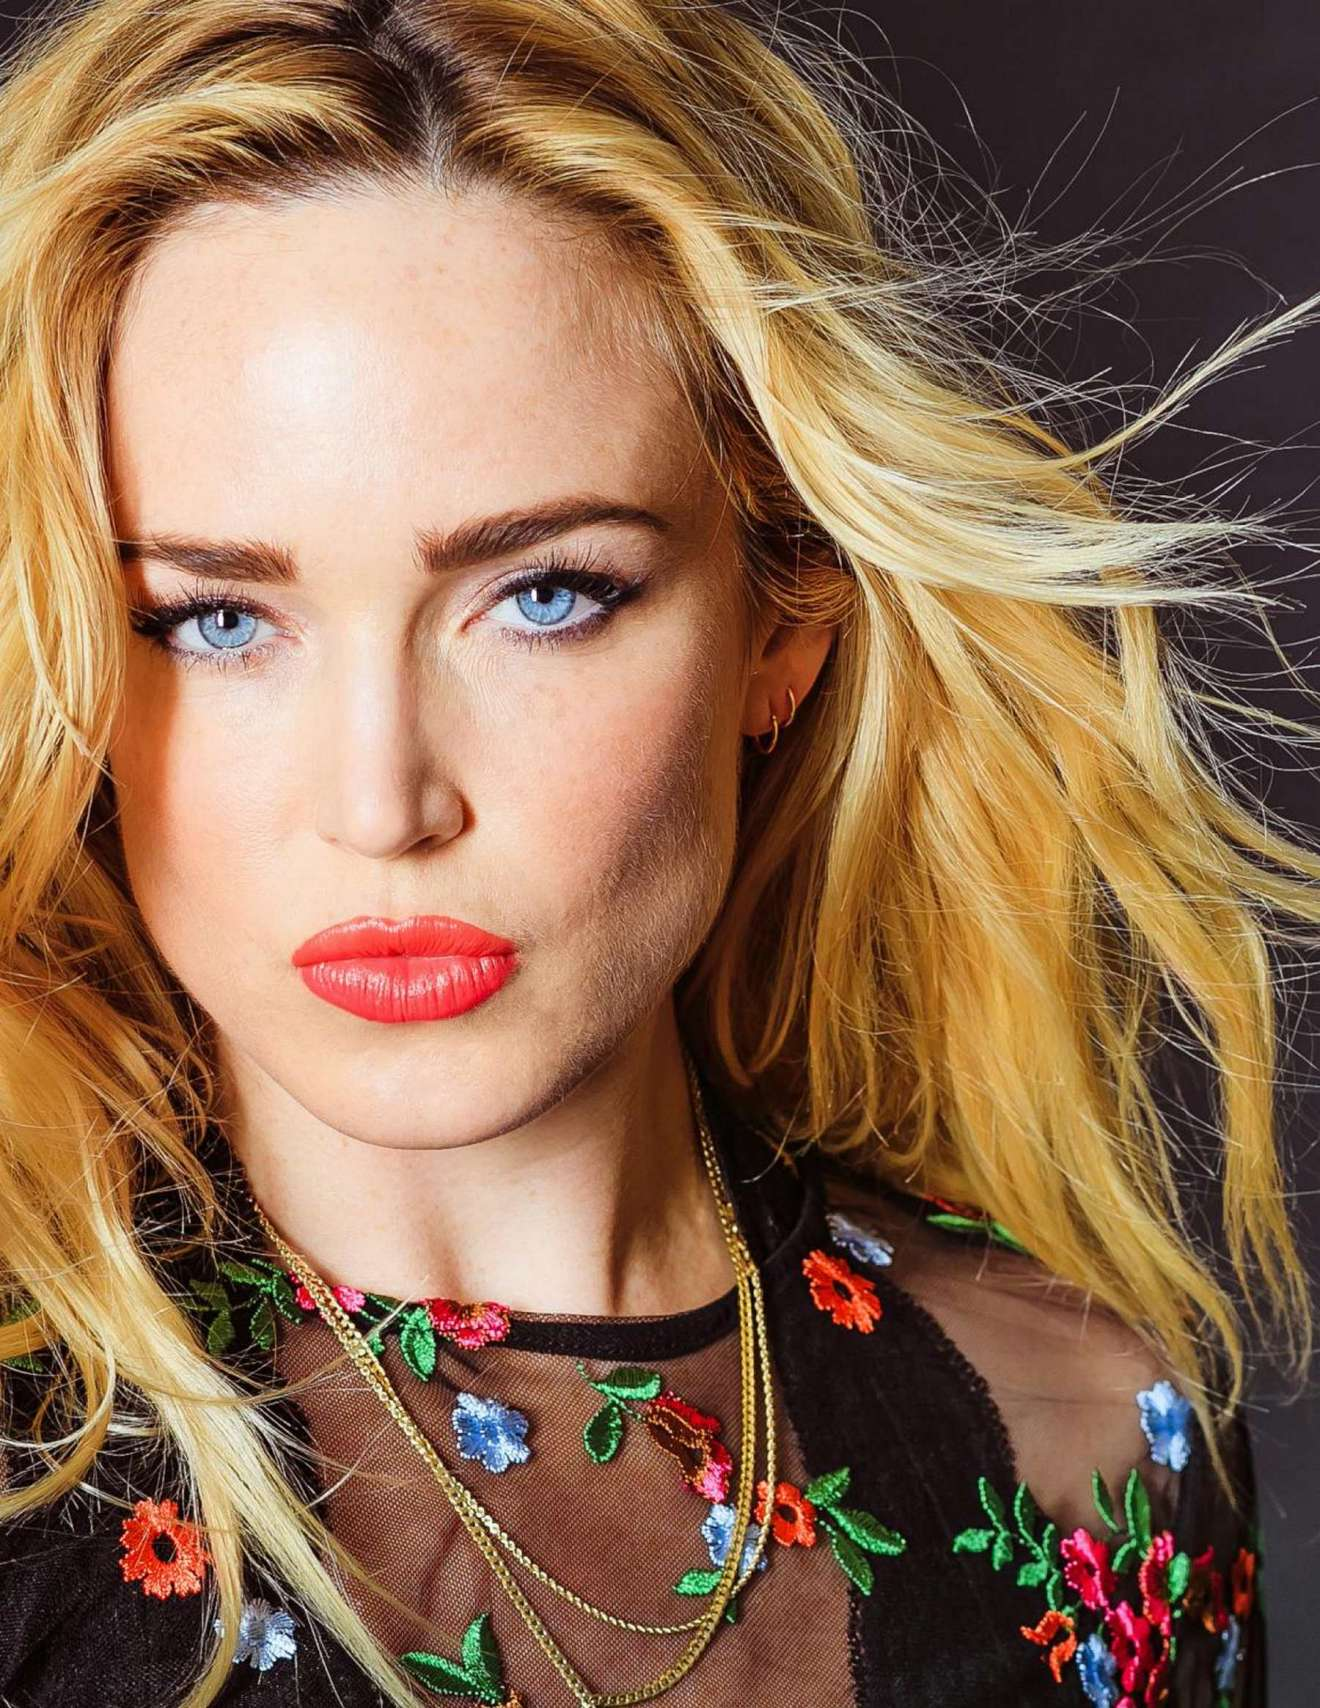 Fall In Paris Wallpaper Caity Lotz Nkd Magazine Issue 76 By Catherine Powell 01